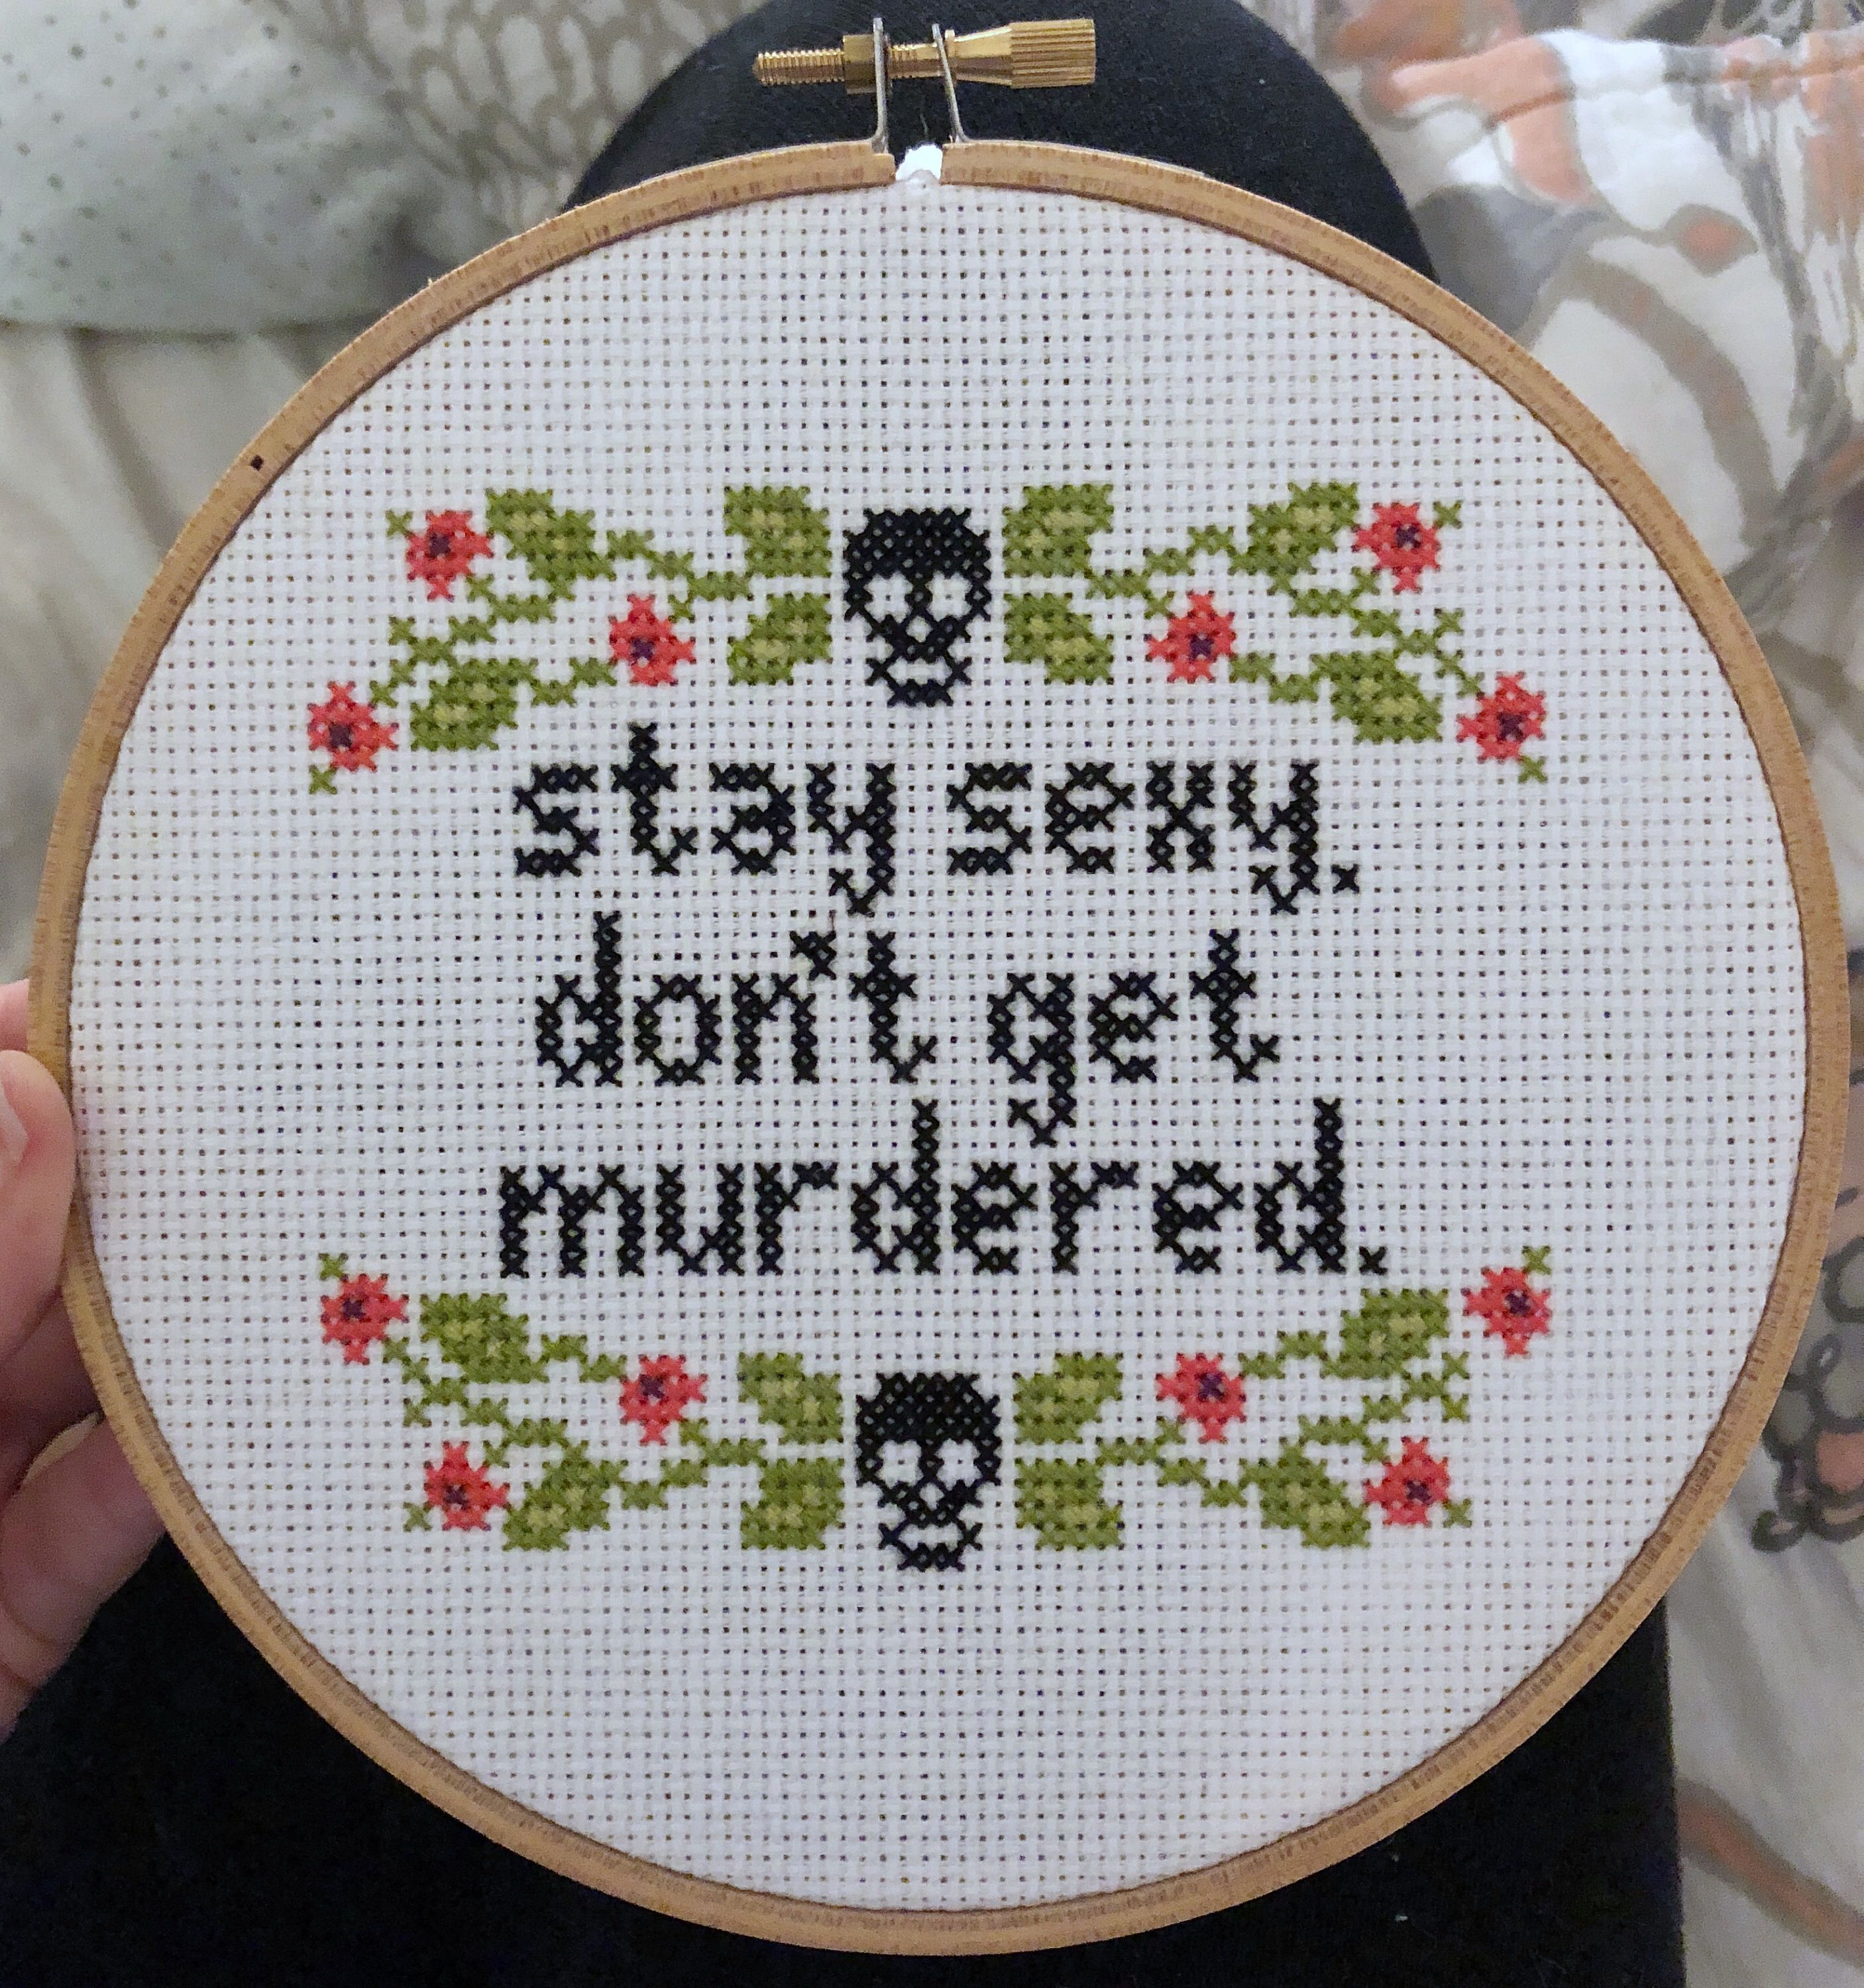 Pattern my favorite murder cross stitch stay sexy donut get